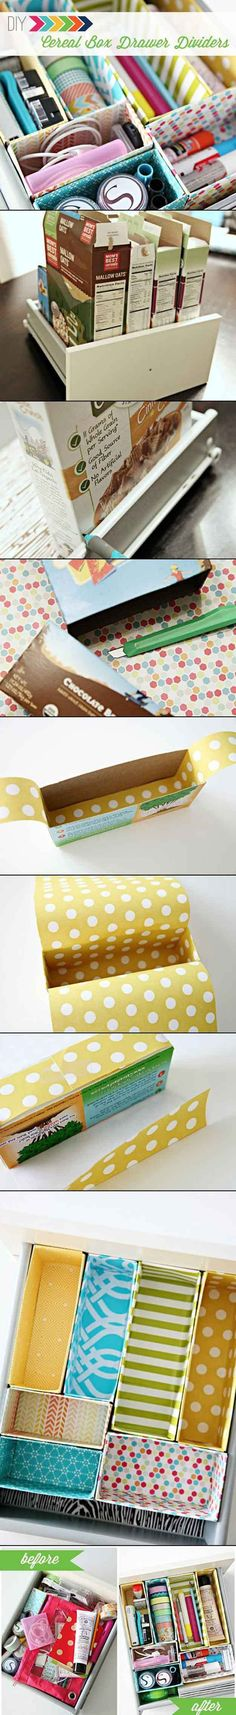 10 Creative Ideas To Re-Use Cereal Boxes | Young Craze